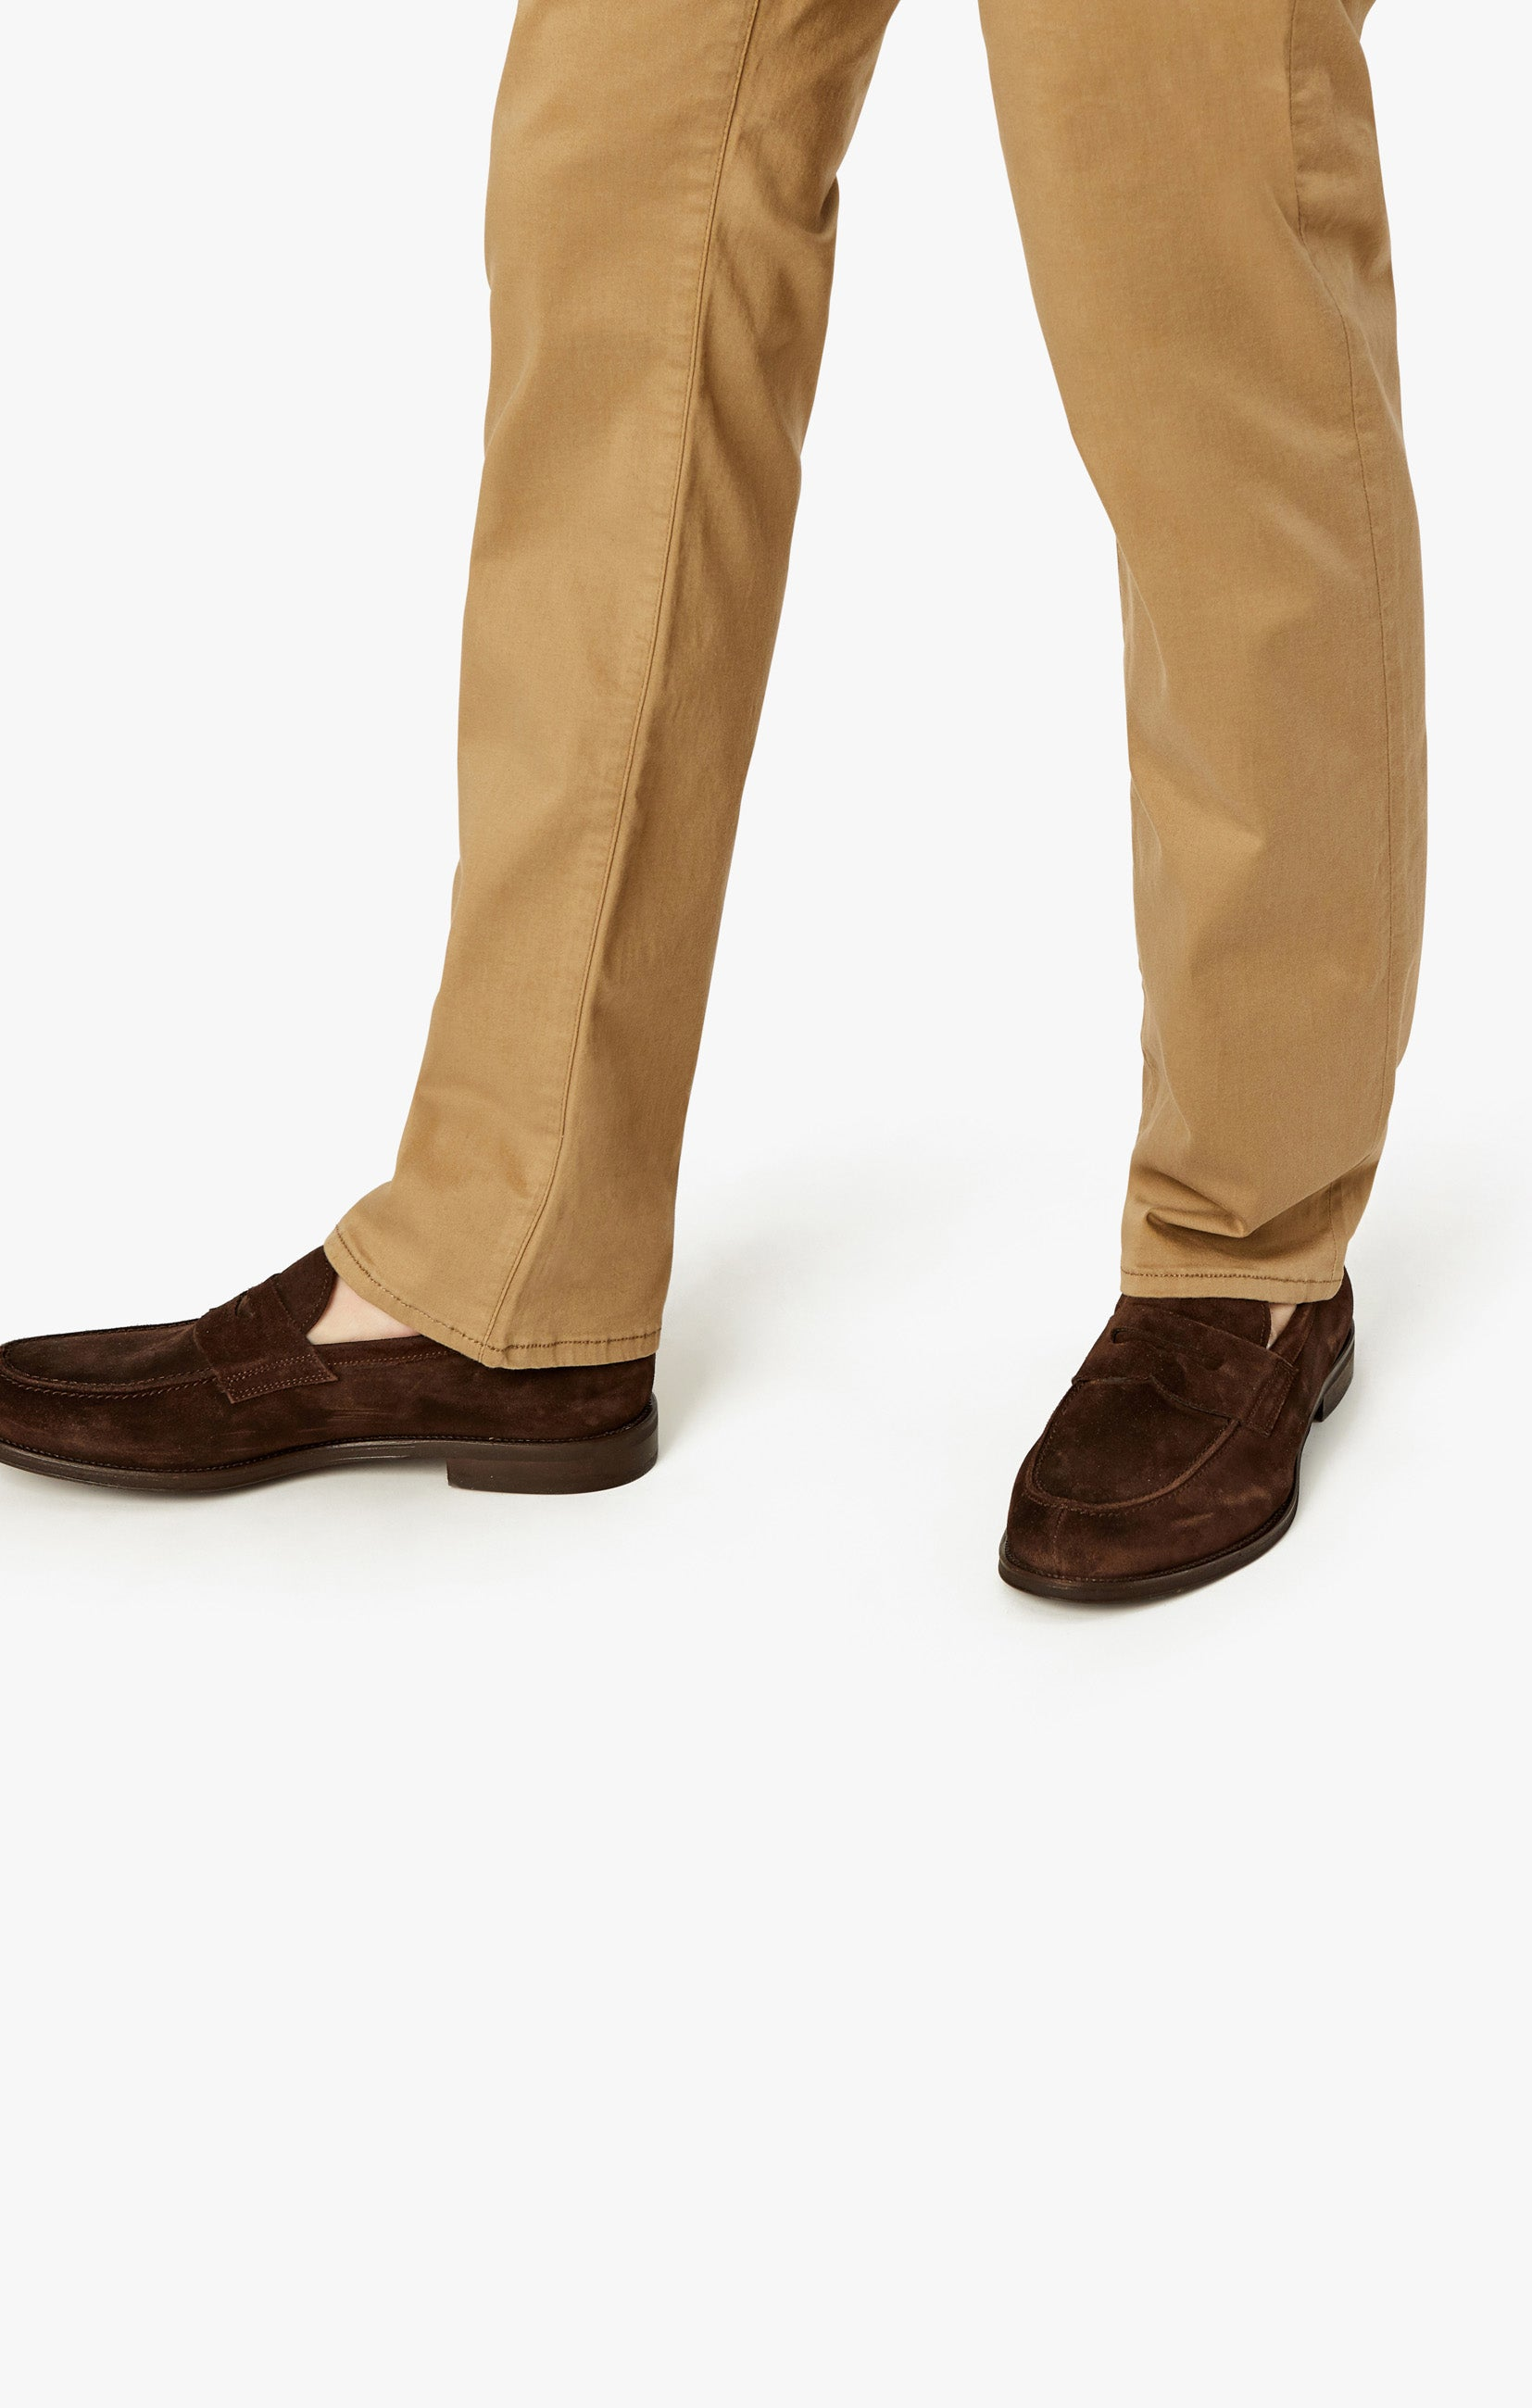 Courage Straight Leg Pants In Khaki Twill Image 9